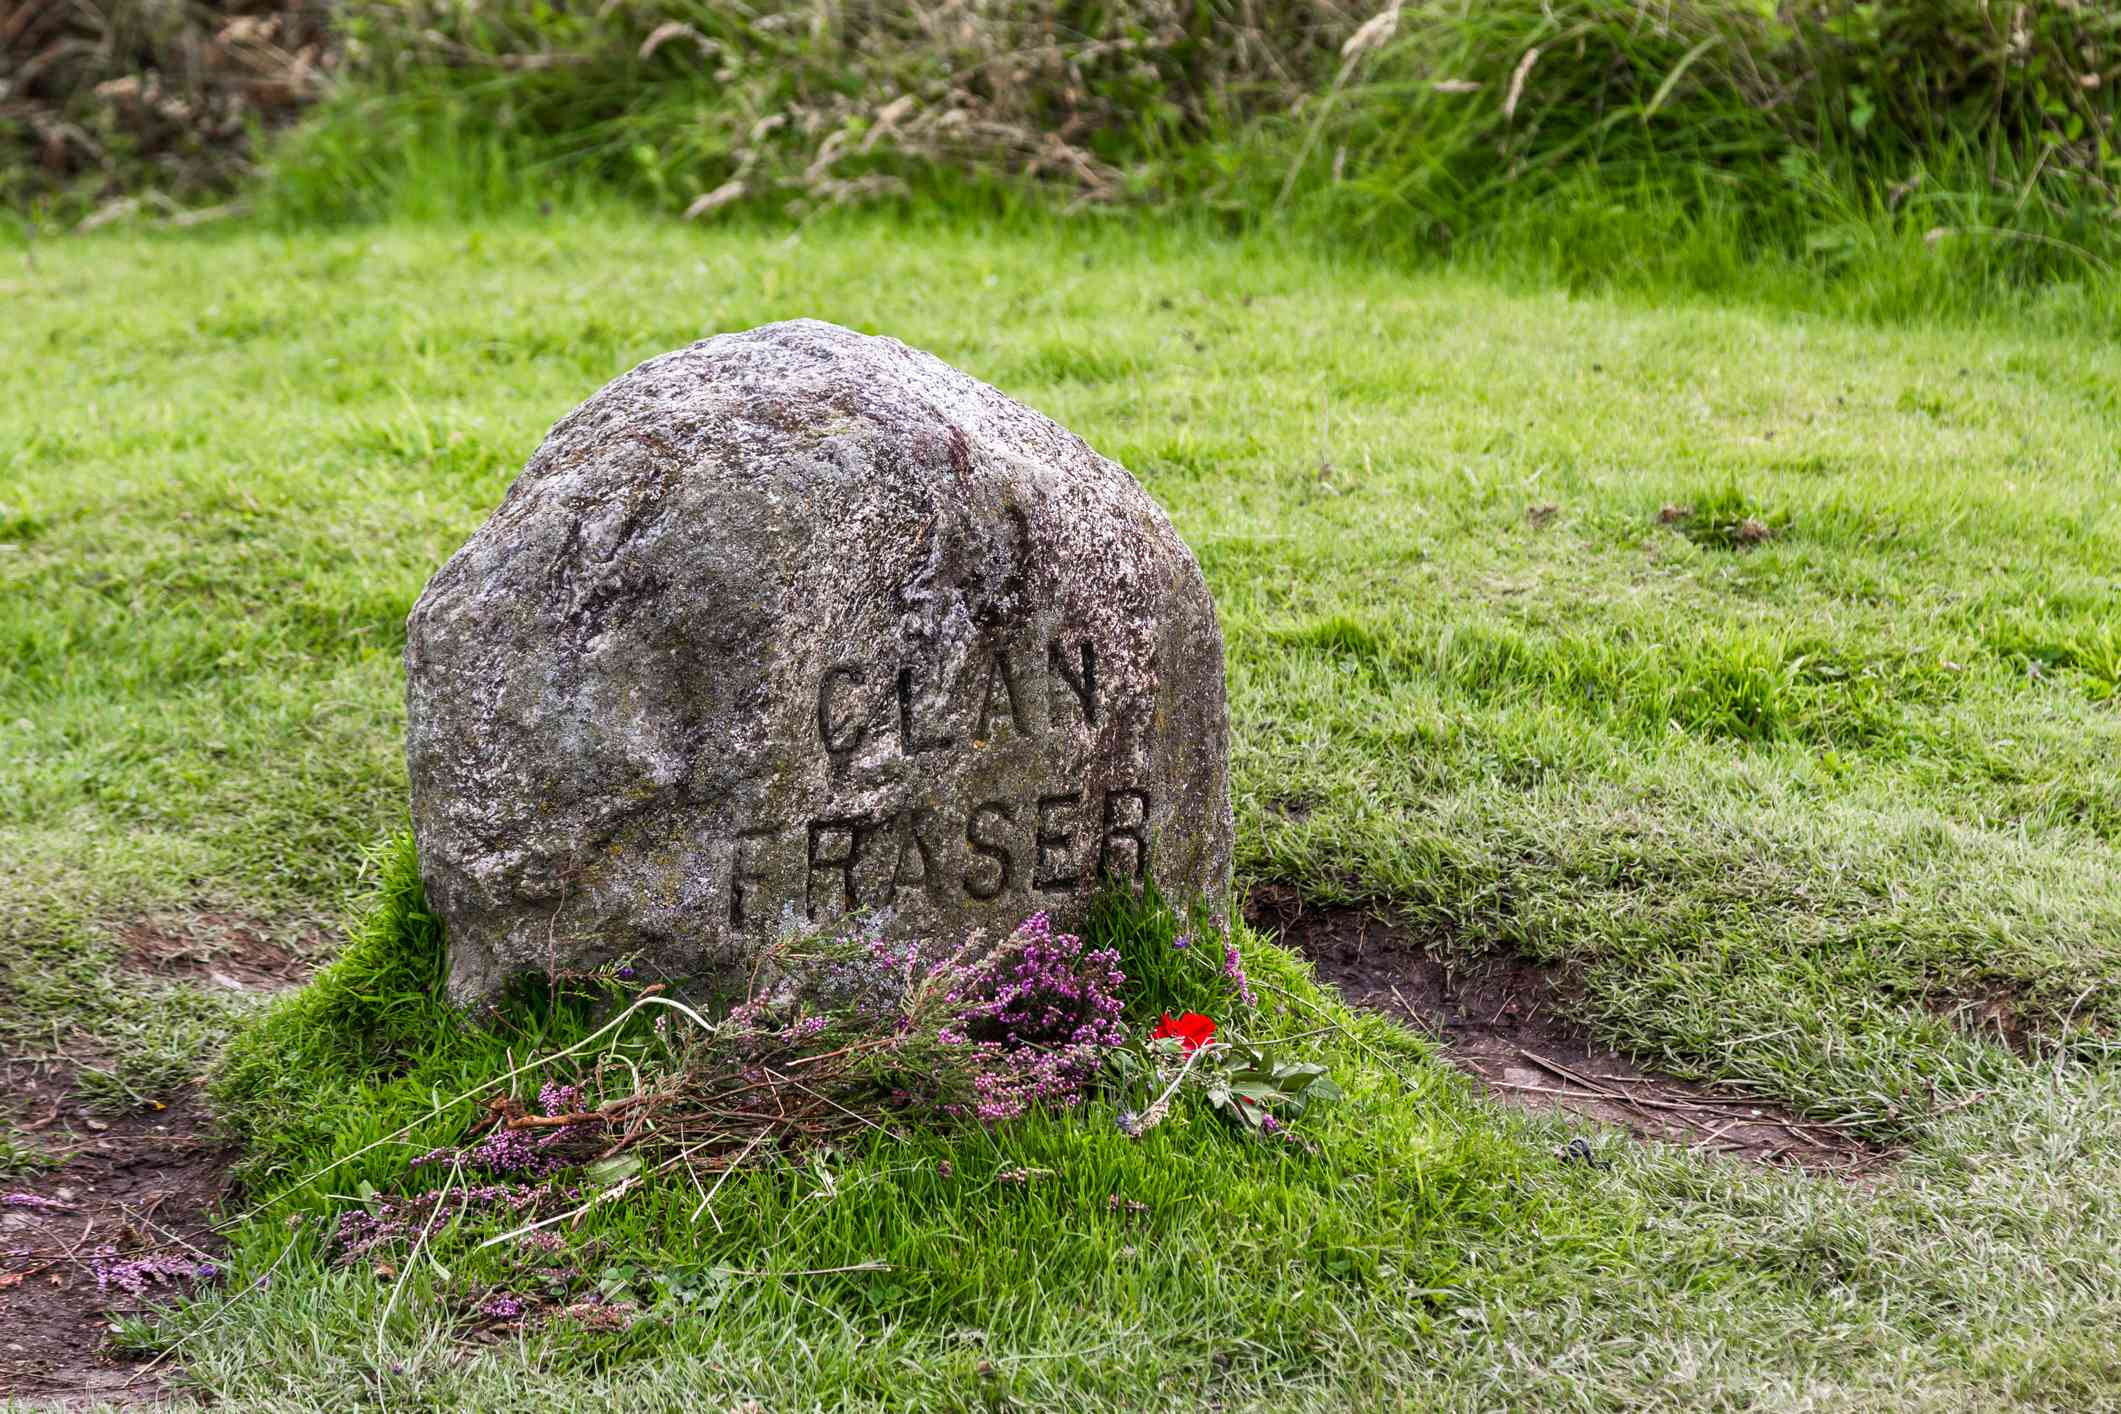 Clan Fraser gravestone at the Battle of Culloden site, Scotland